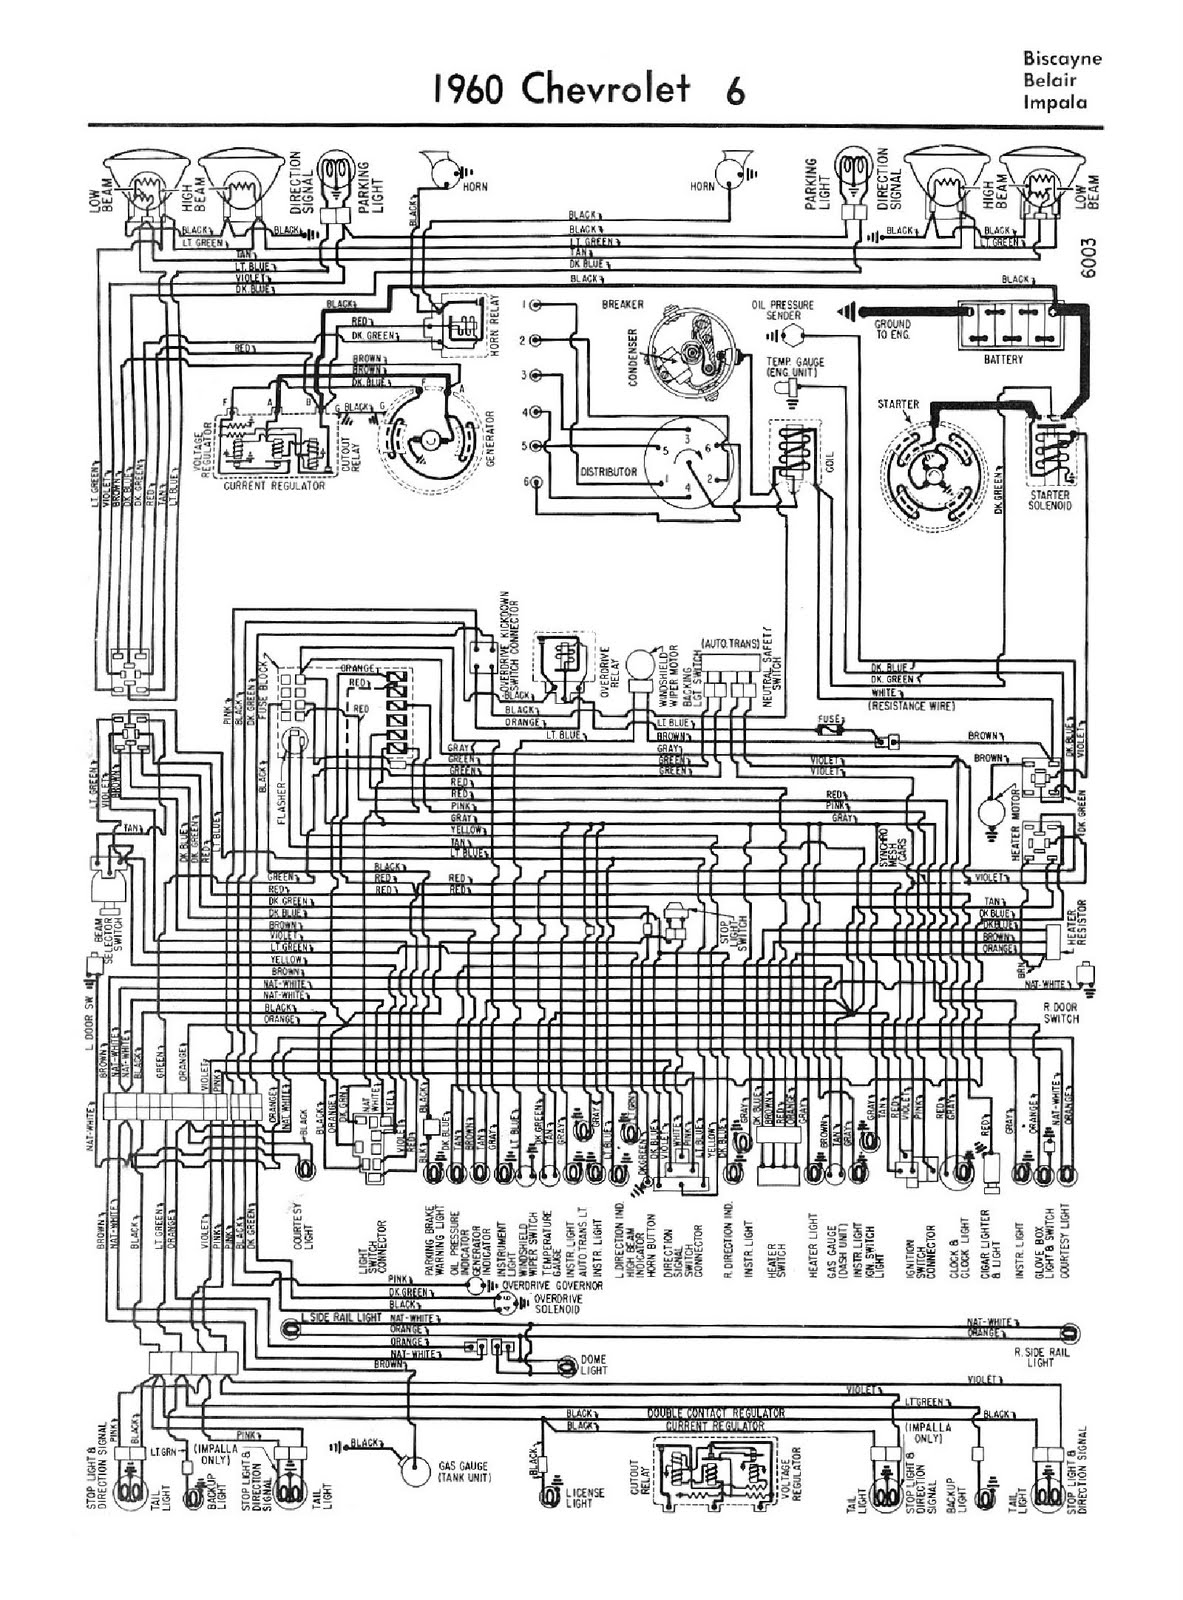 Free Auto Wiring Diagram  1960 Chevrolet V6 Biscayne  Belair  And Impala Wiring Diagram